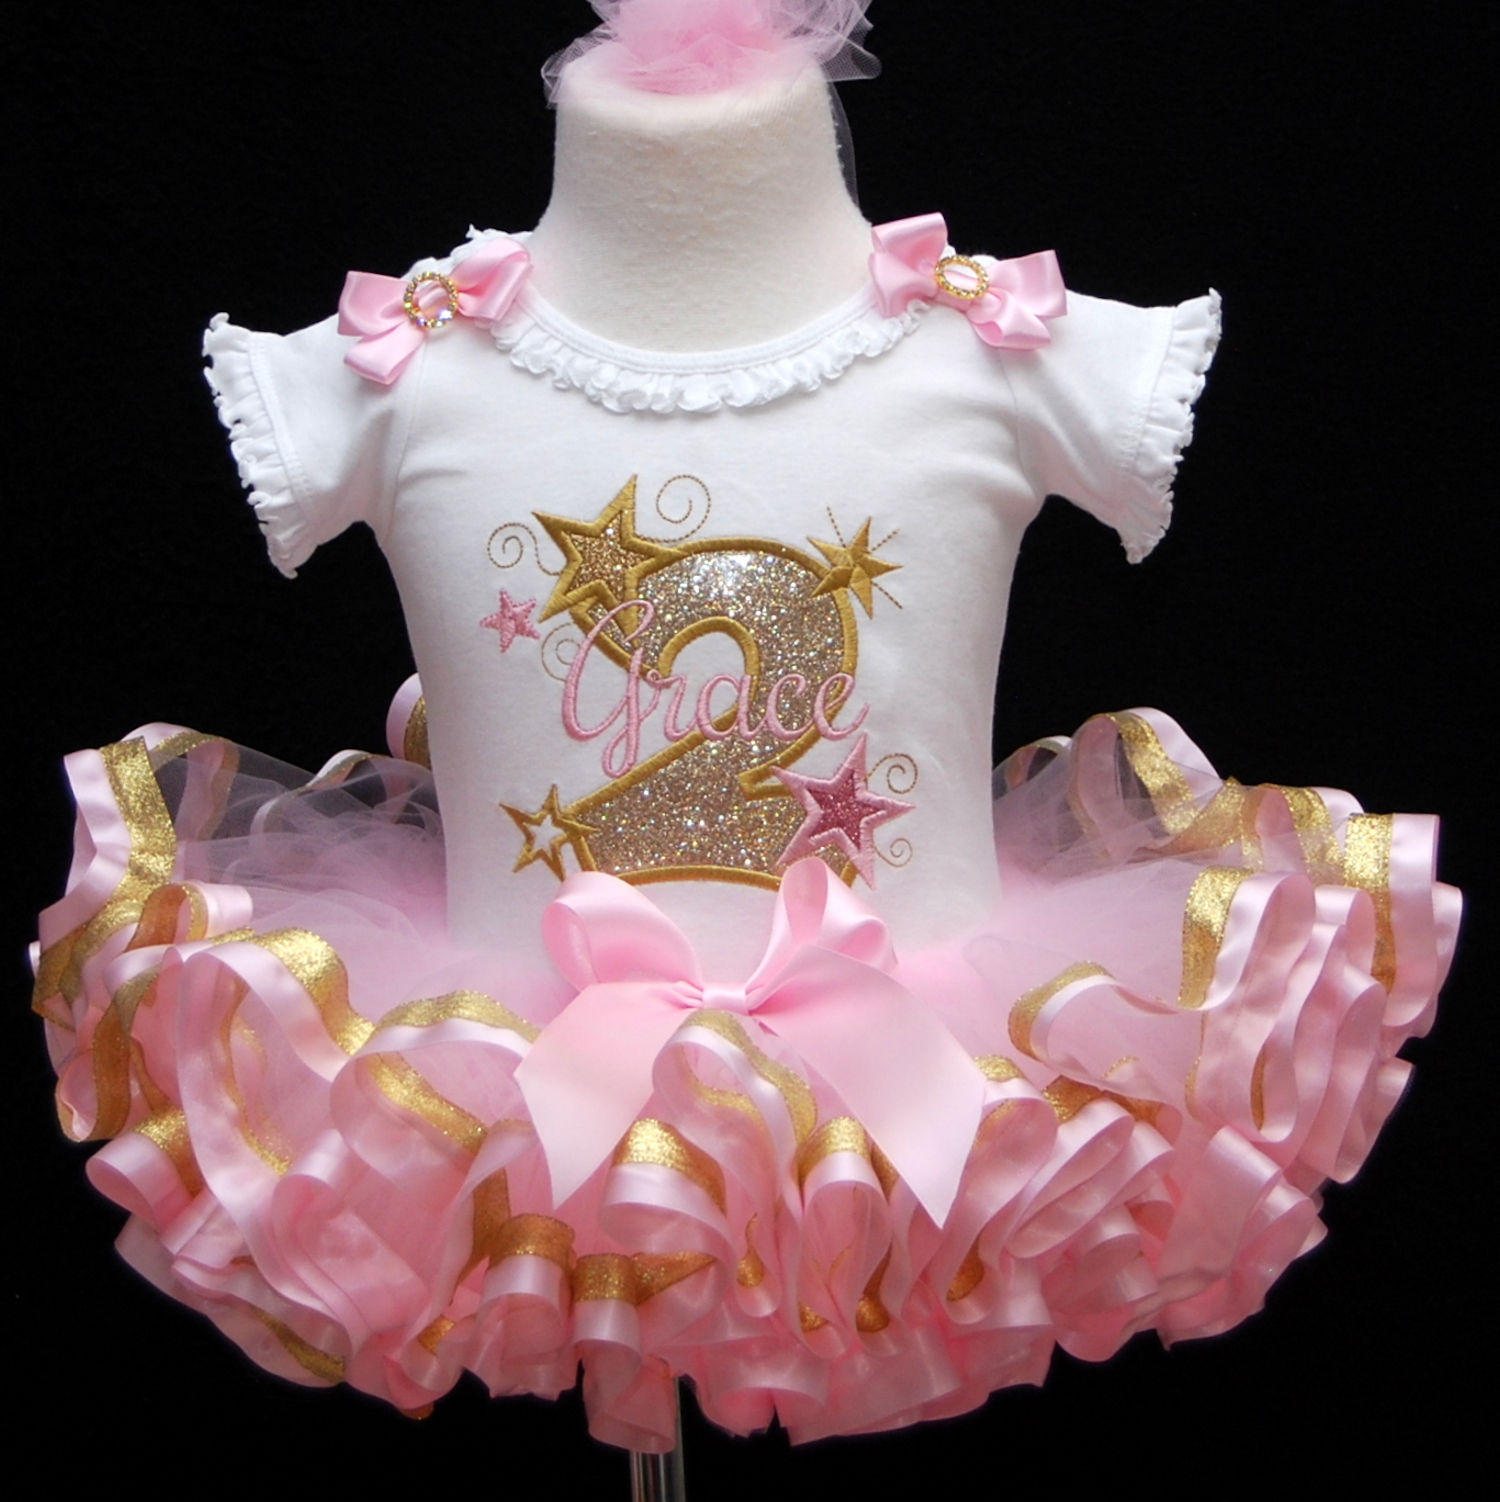 2nd Birthday Twinkle Twinkle Little Star in pink and gold